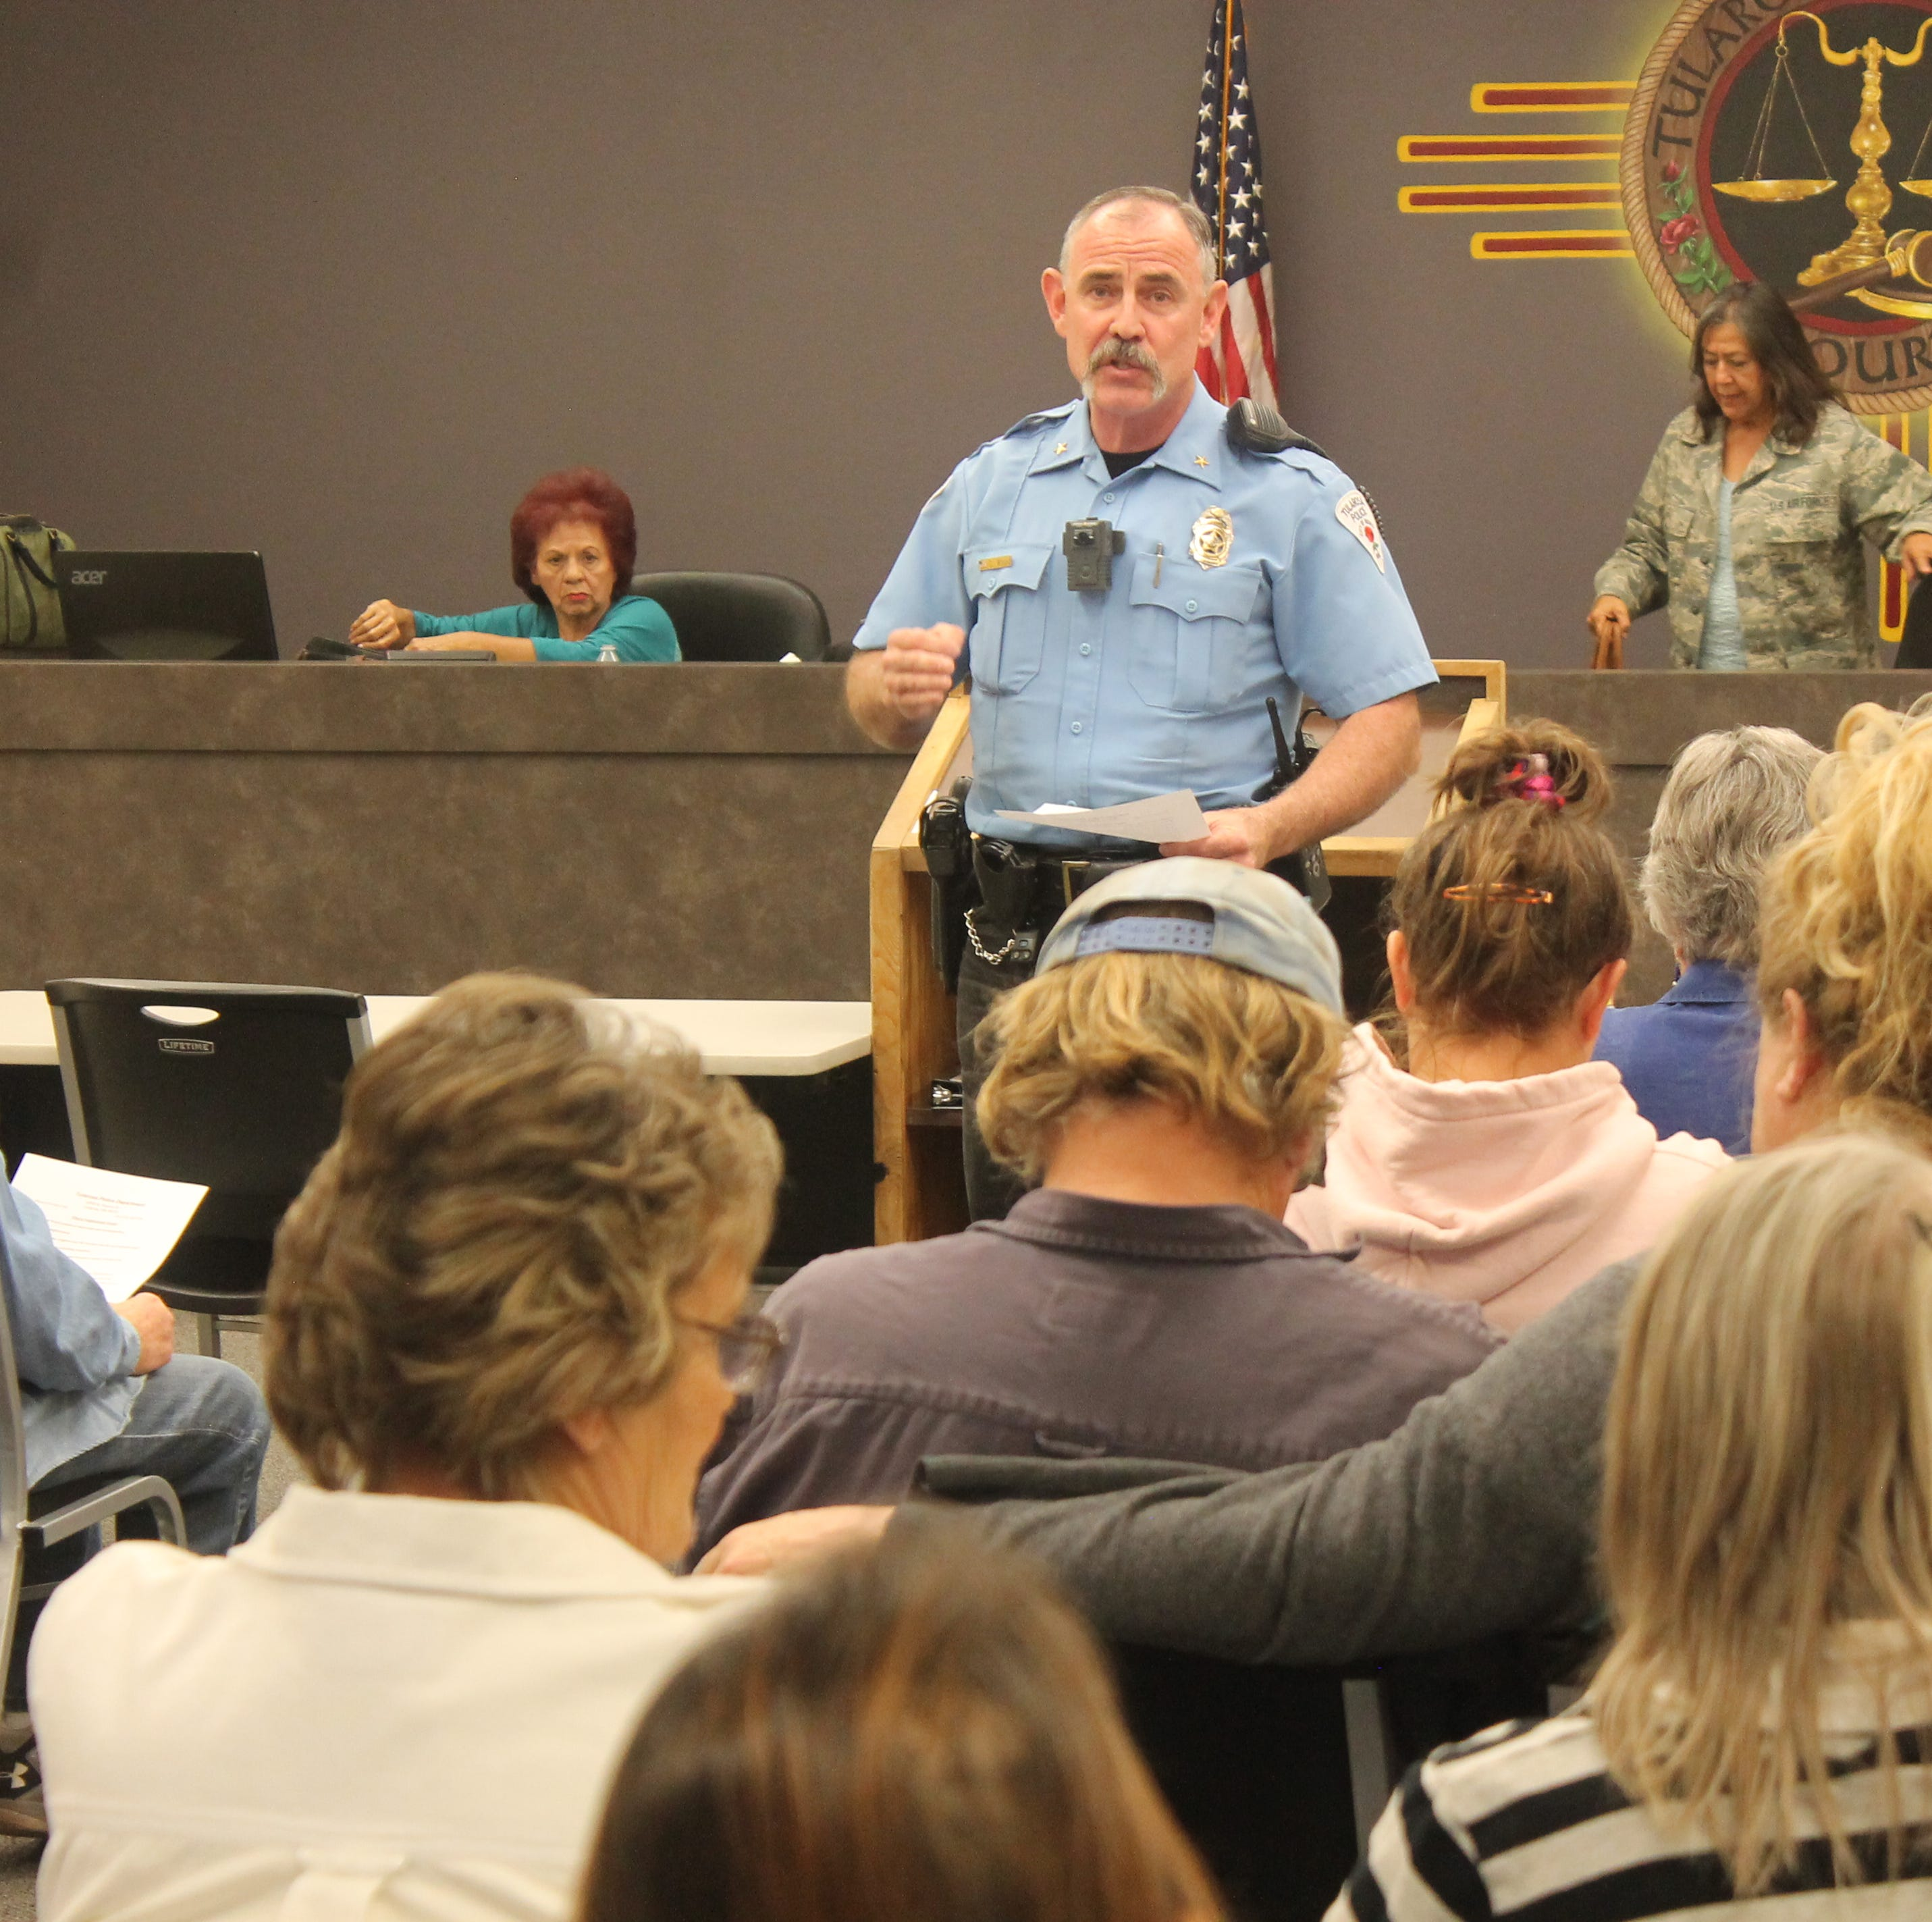 Tularosa police and residents discuss rise in crime in community